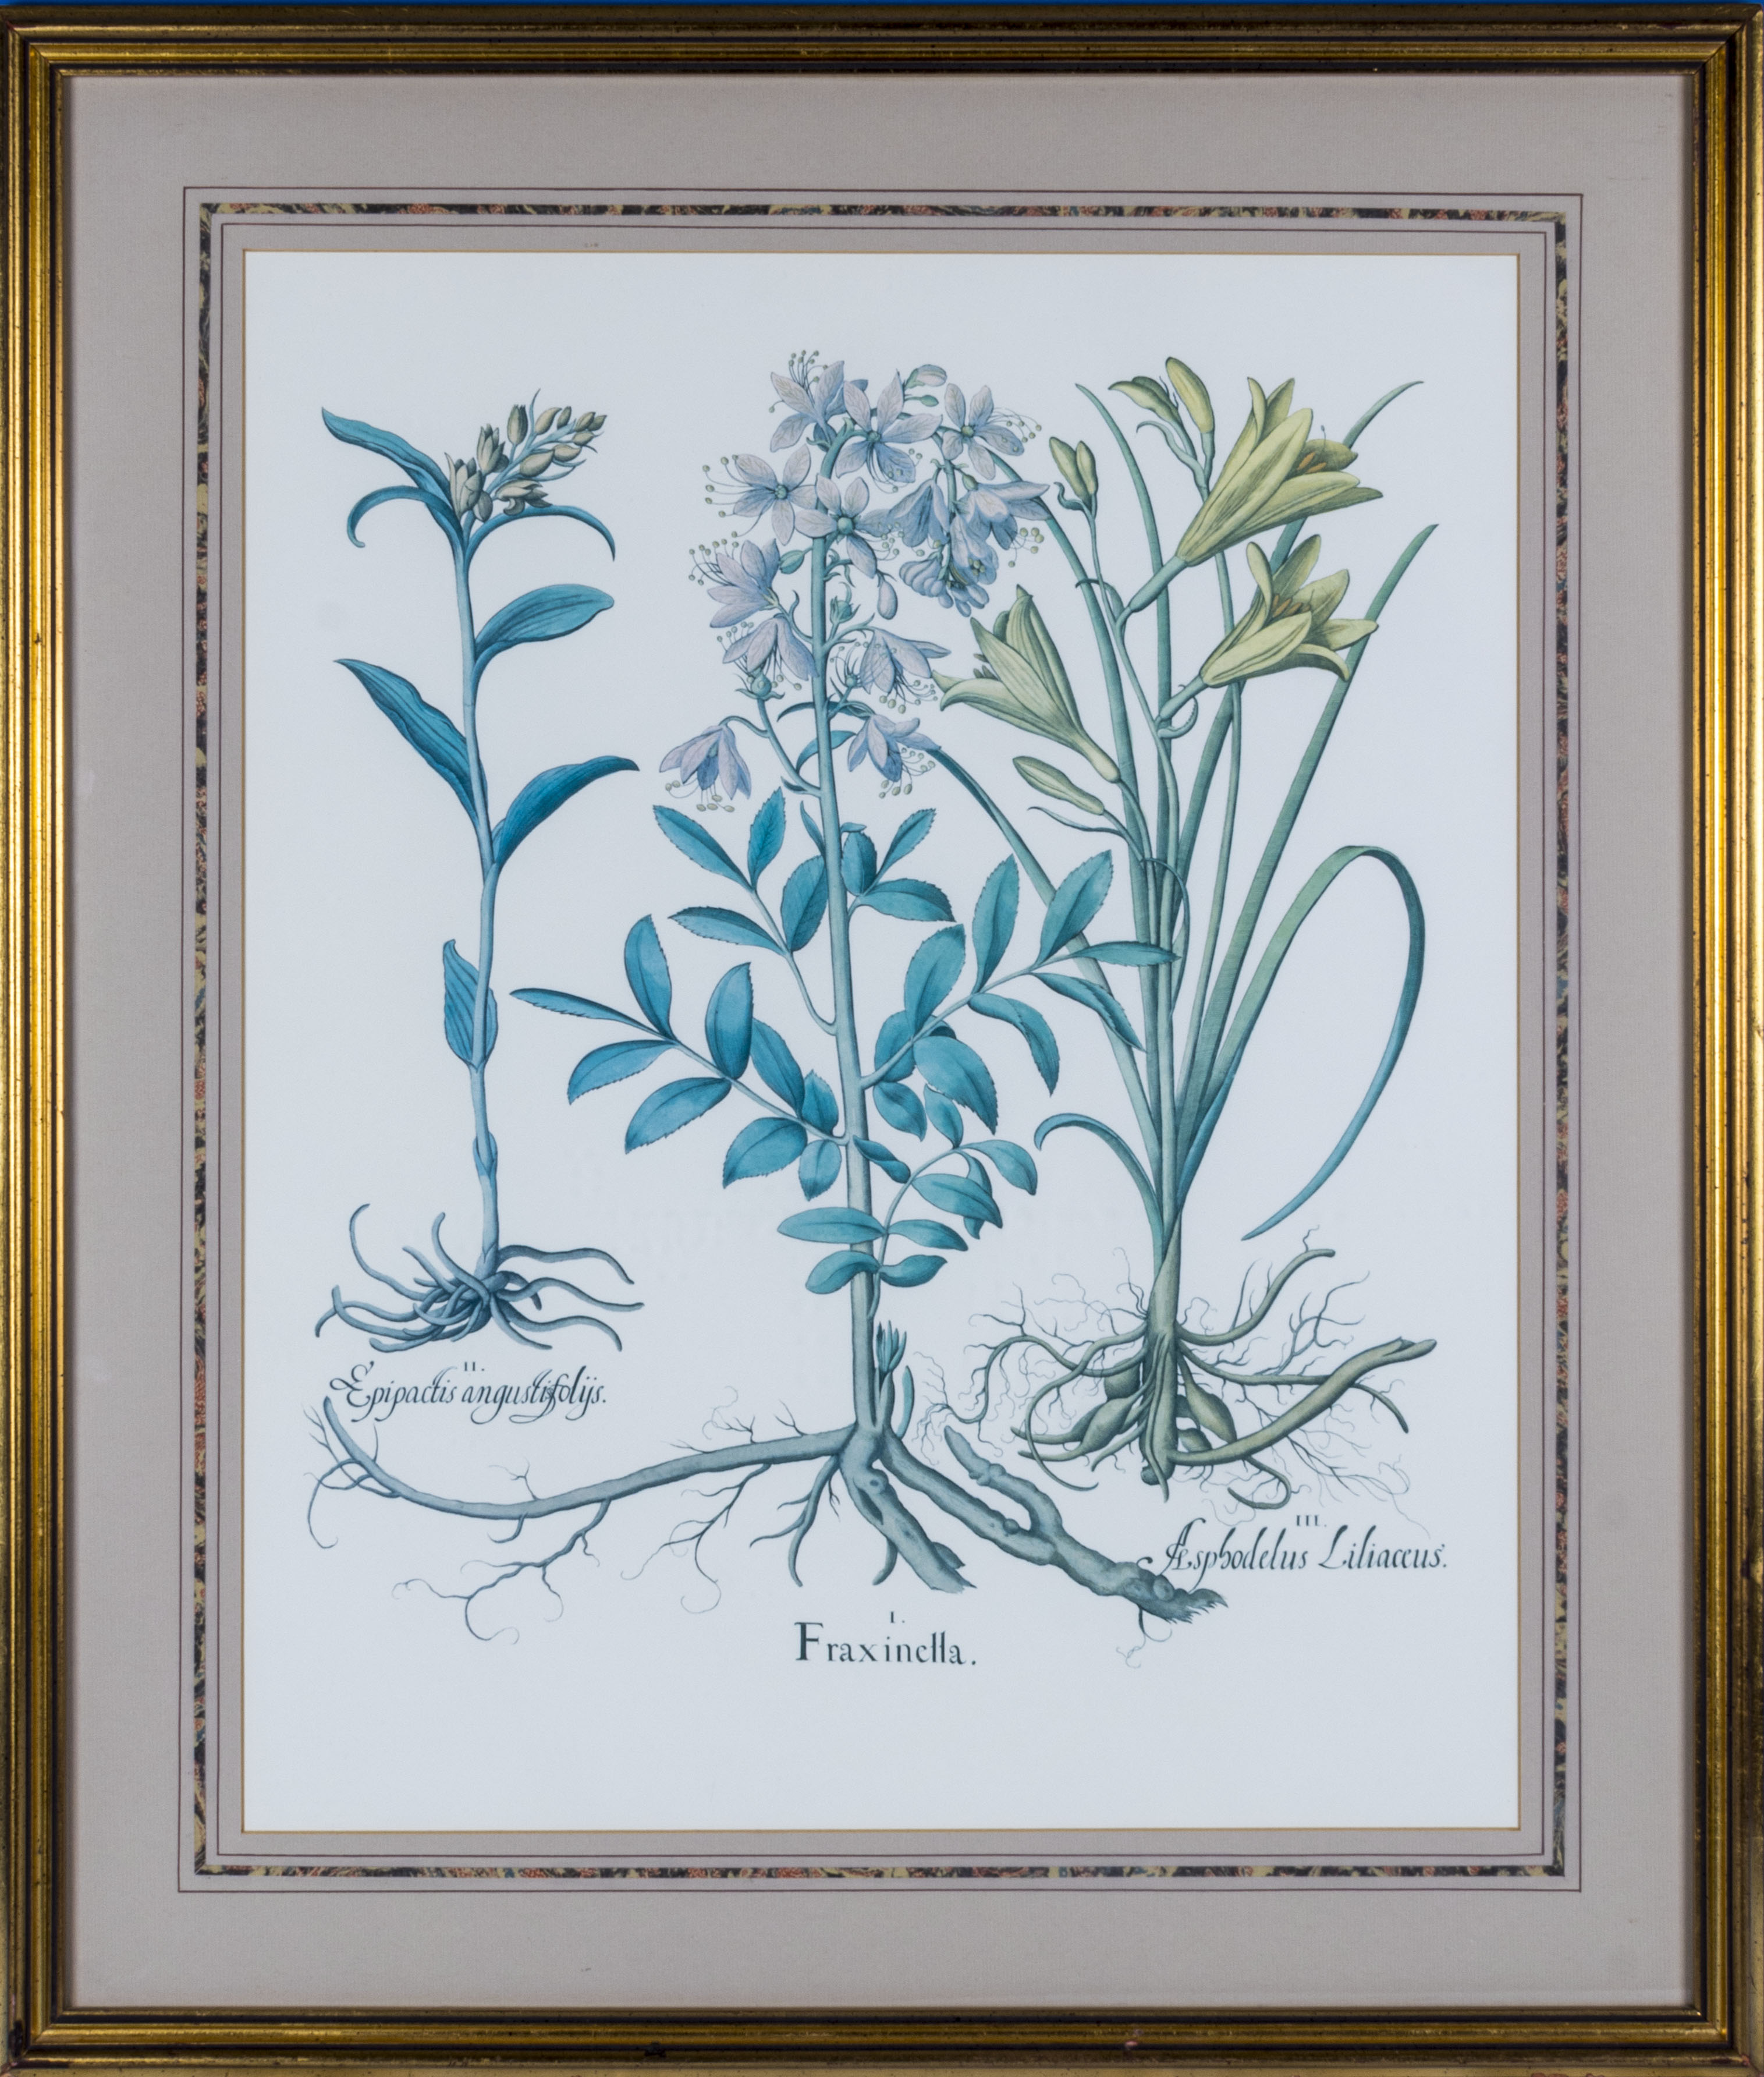 A large framed print depicting wild flowers